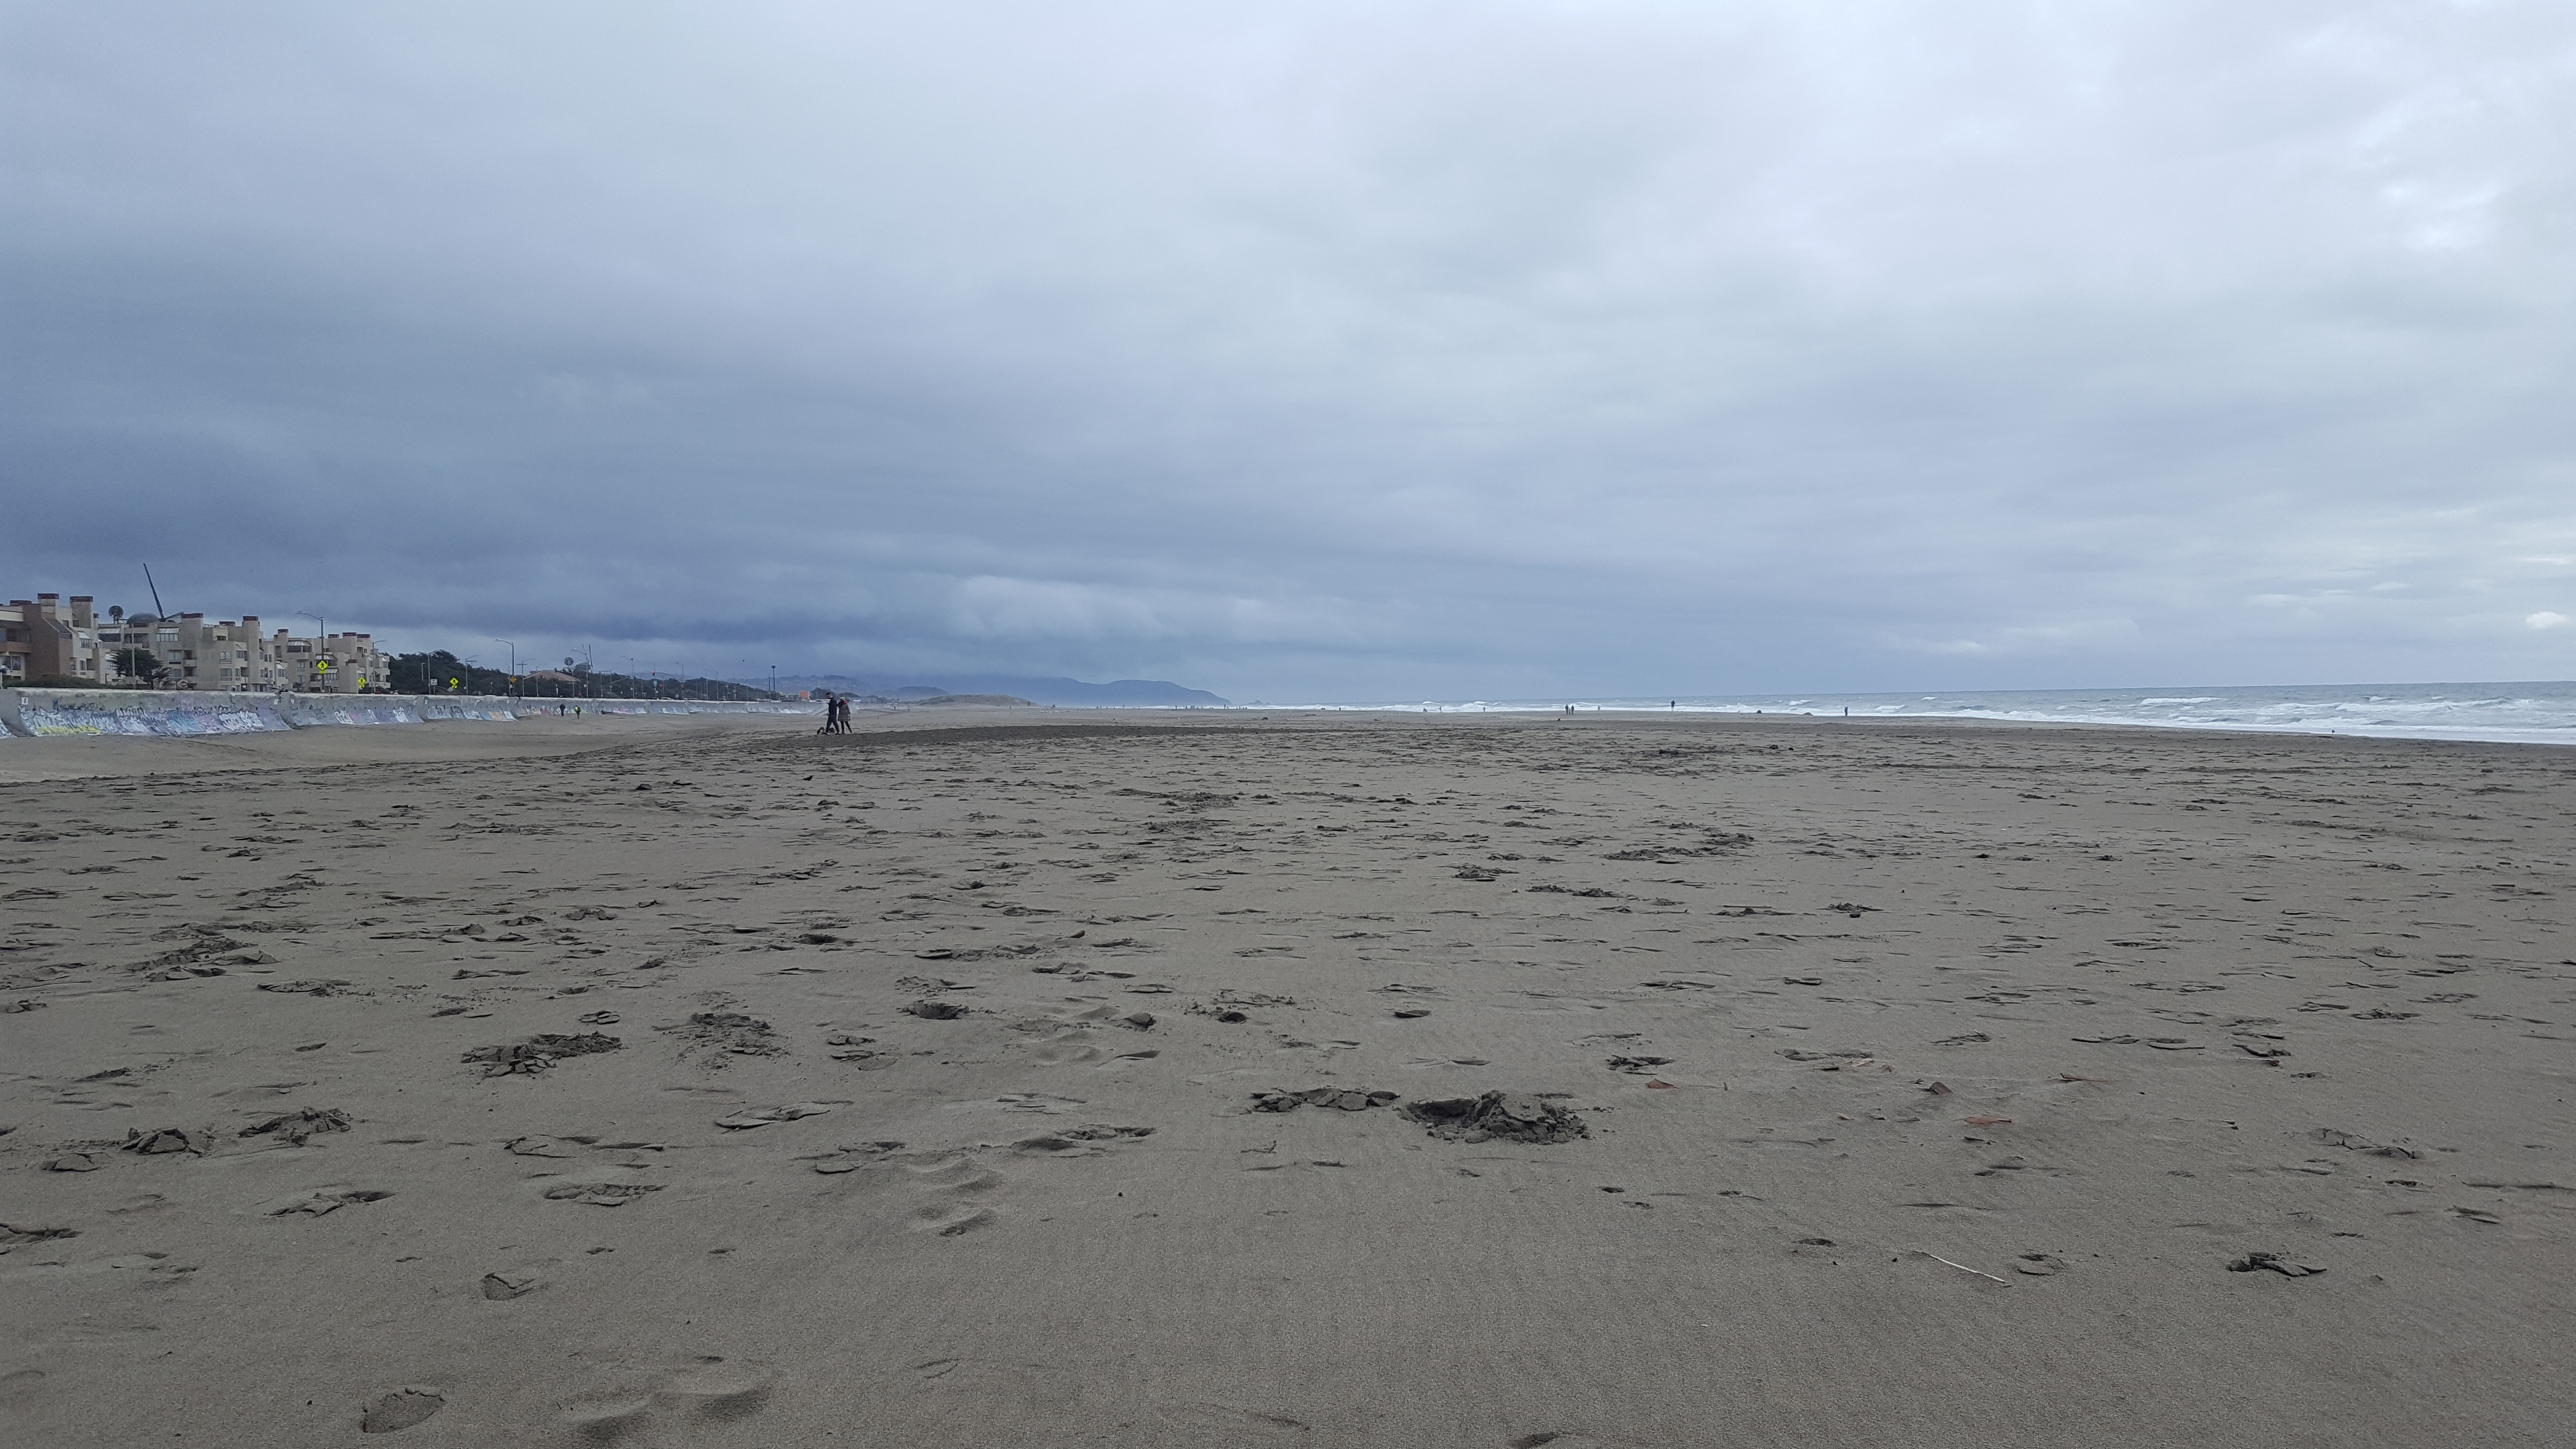 Ocean Beach, SF, looking south